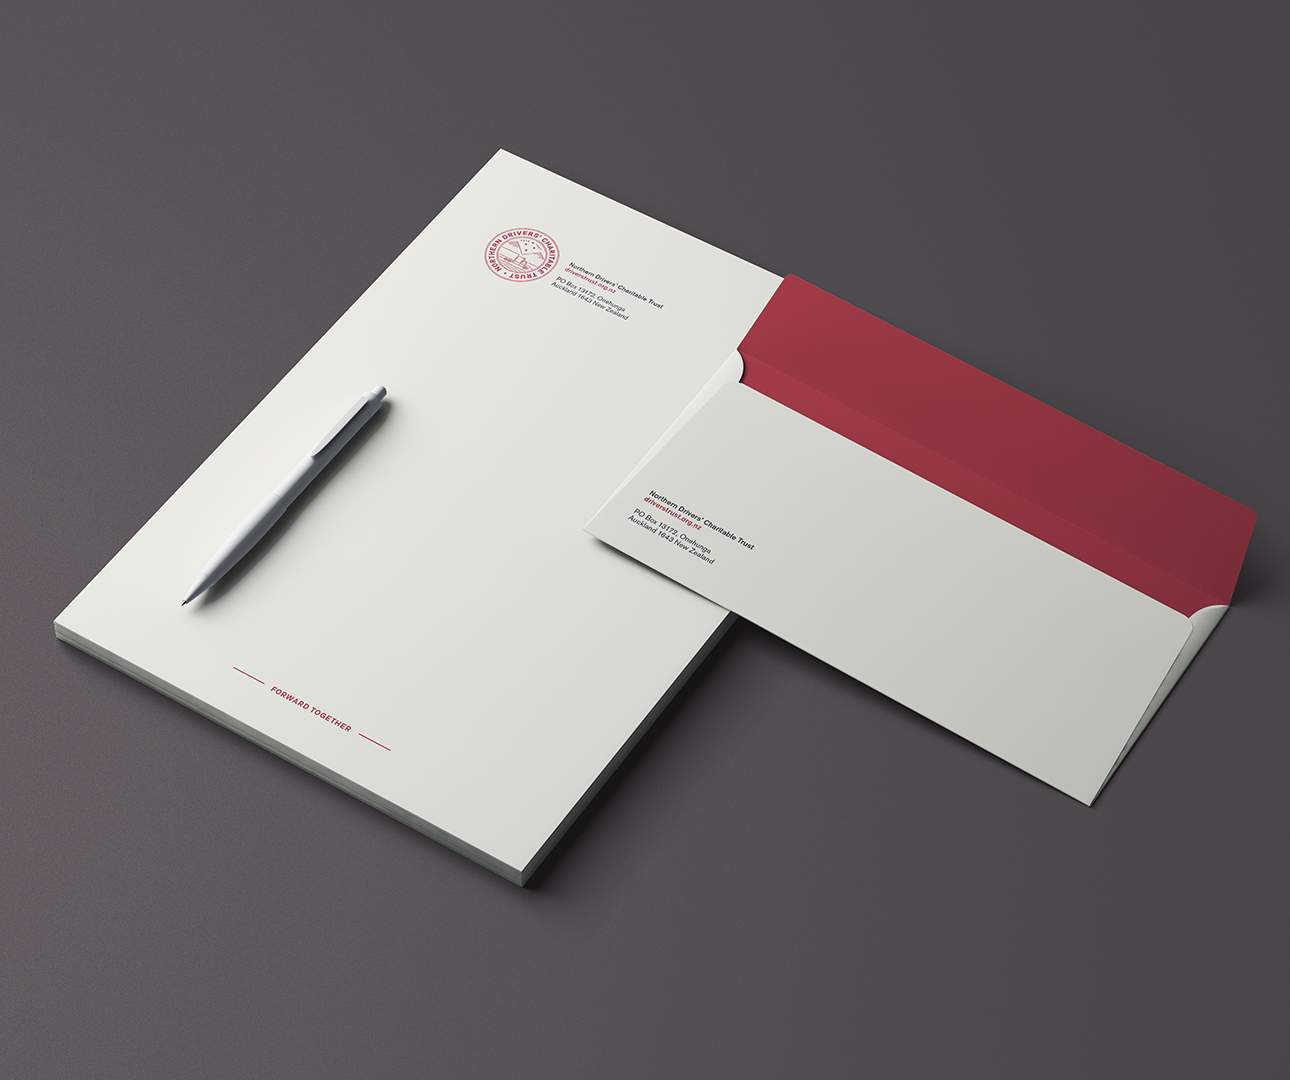 Northern Drivers' Charitable Trust letterhead and envelope